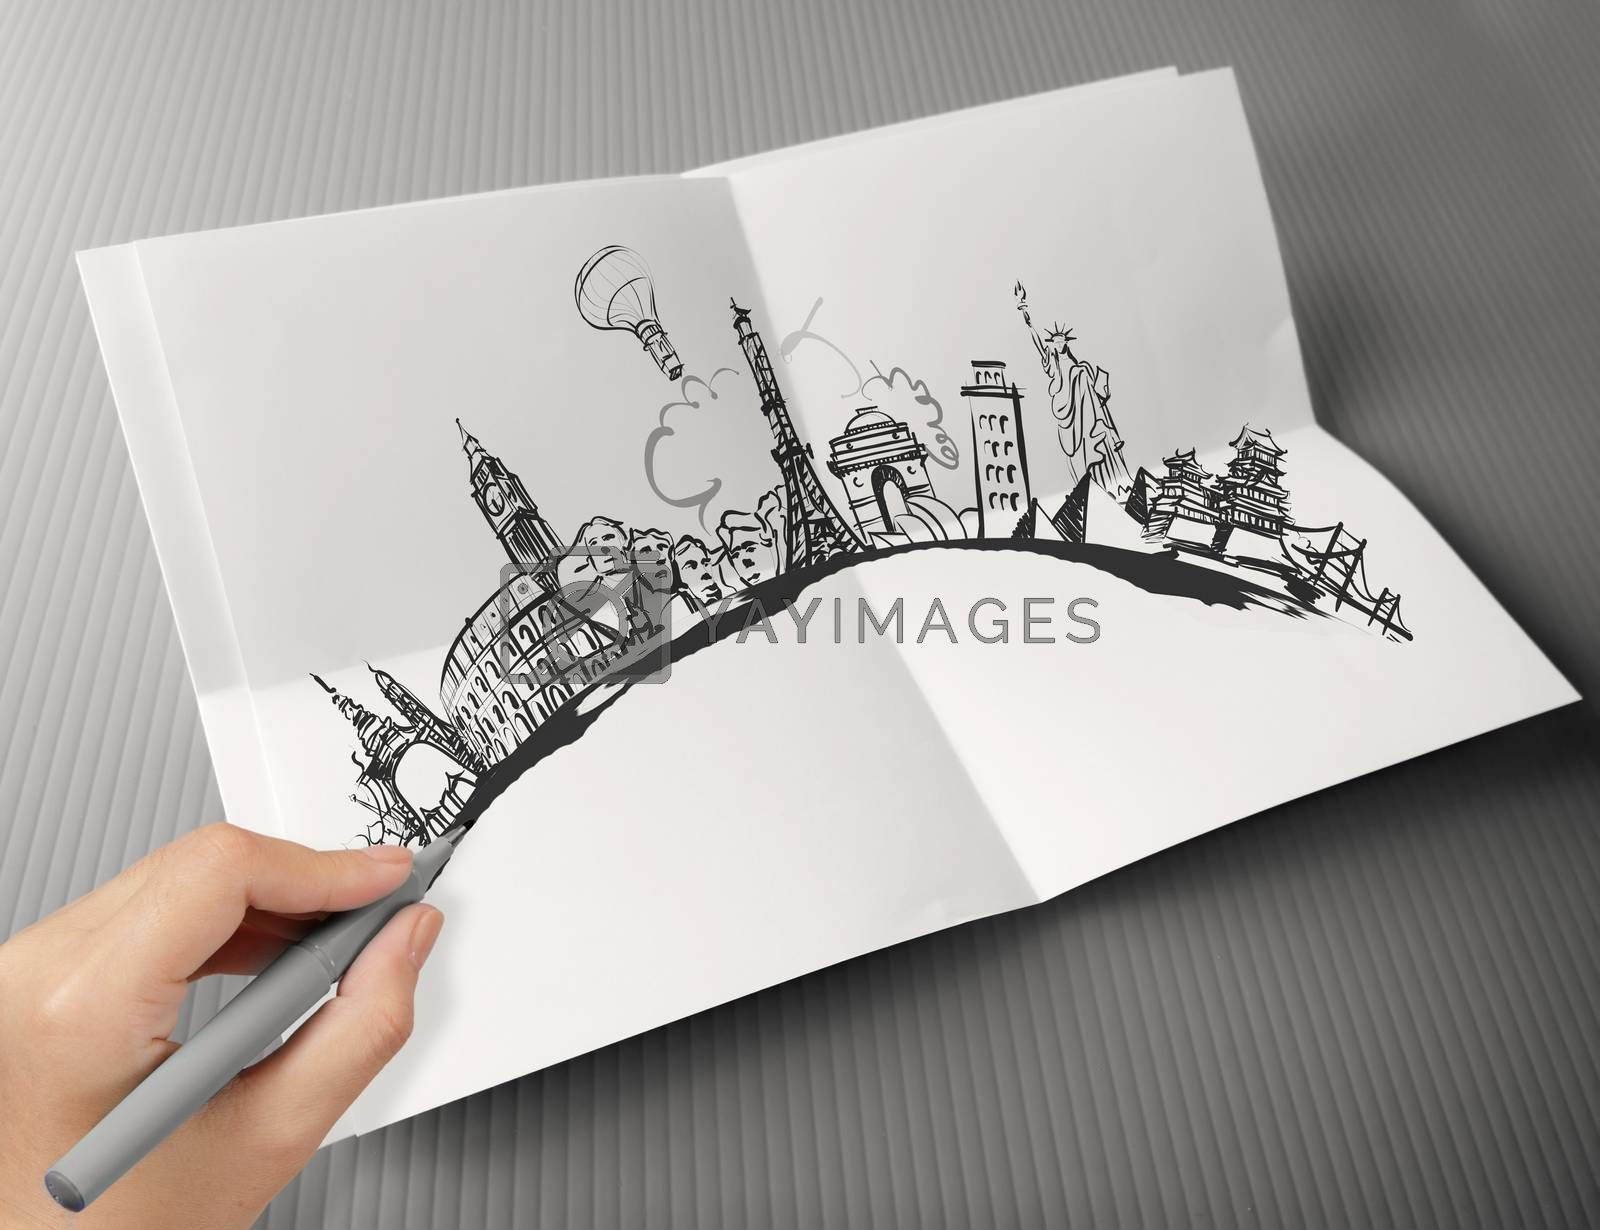 Royalty free image of hand drawn traveling around the world on paper background as vin by everythingpossible